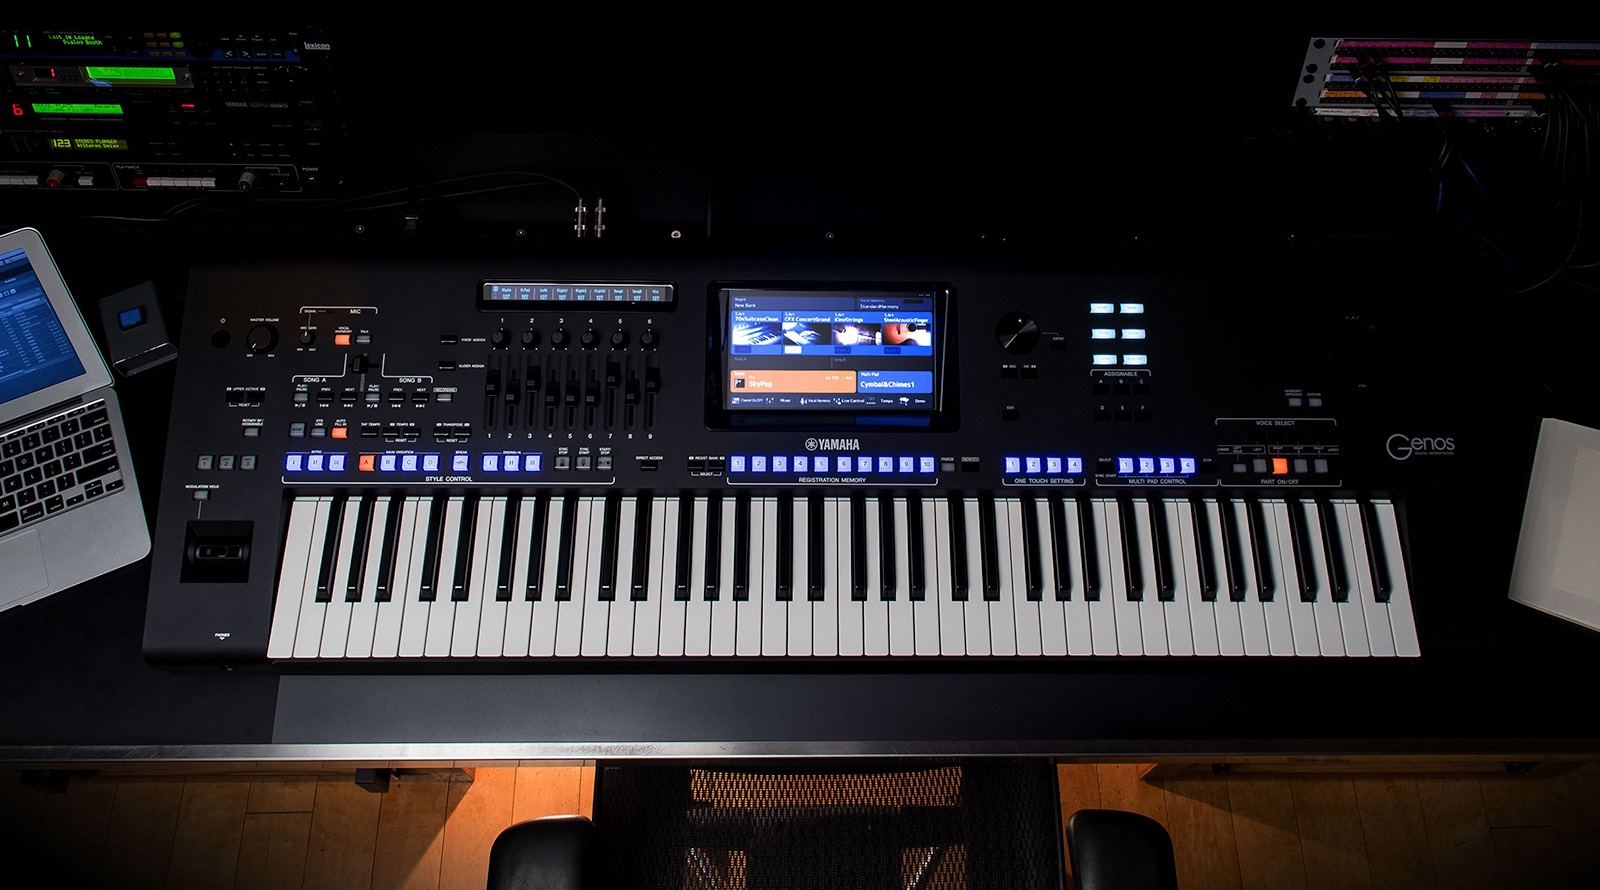 Image Result For Yamaha Keyboard Android